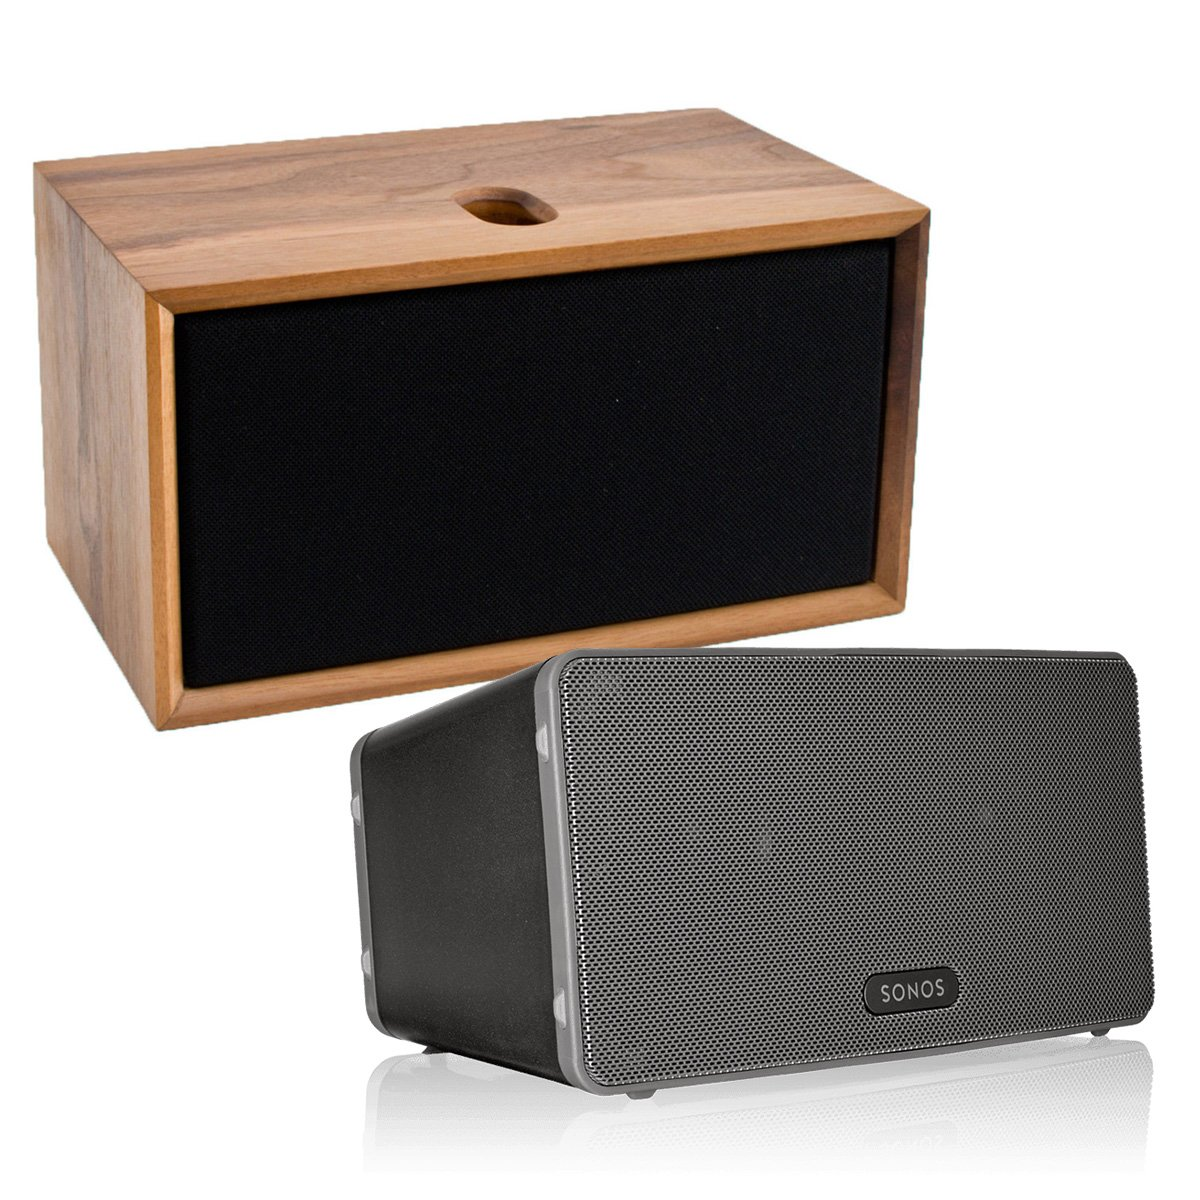 Sonos PLAY:3 All-In-One Wireless Music Streaming Speaker (Black) with Leon ToneCase Hardwood Cabinet (Black Walnut)